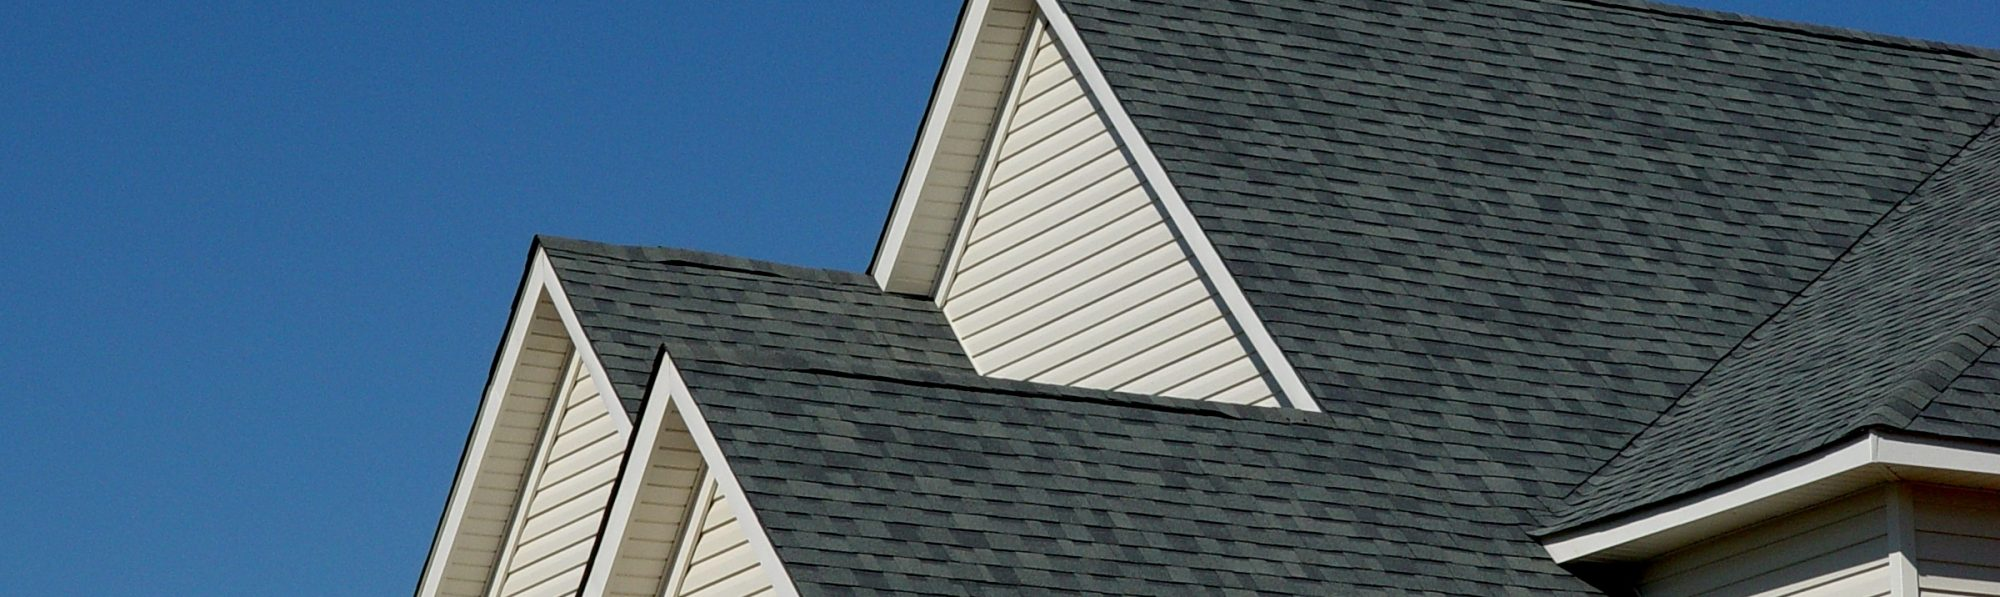 Tiled Roof and Skylight